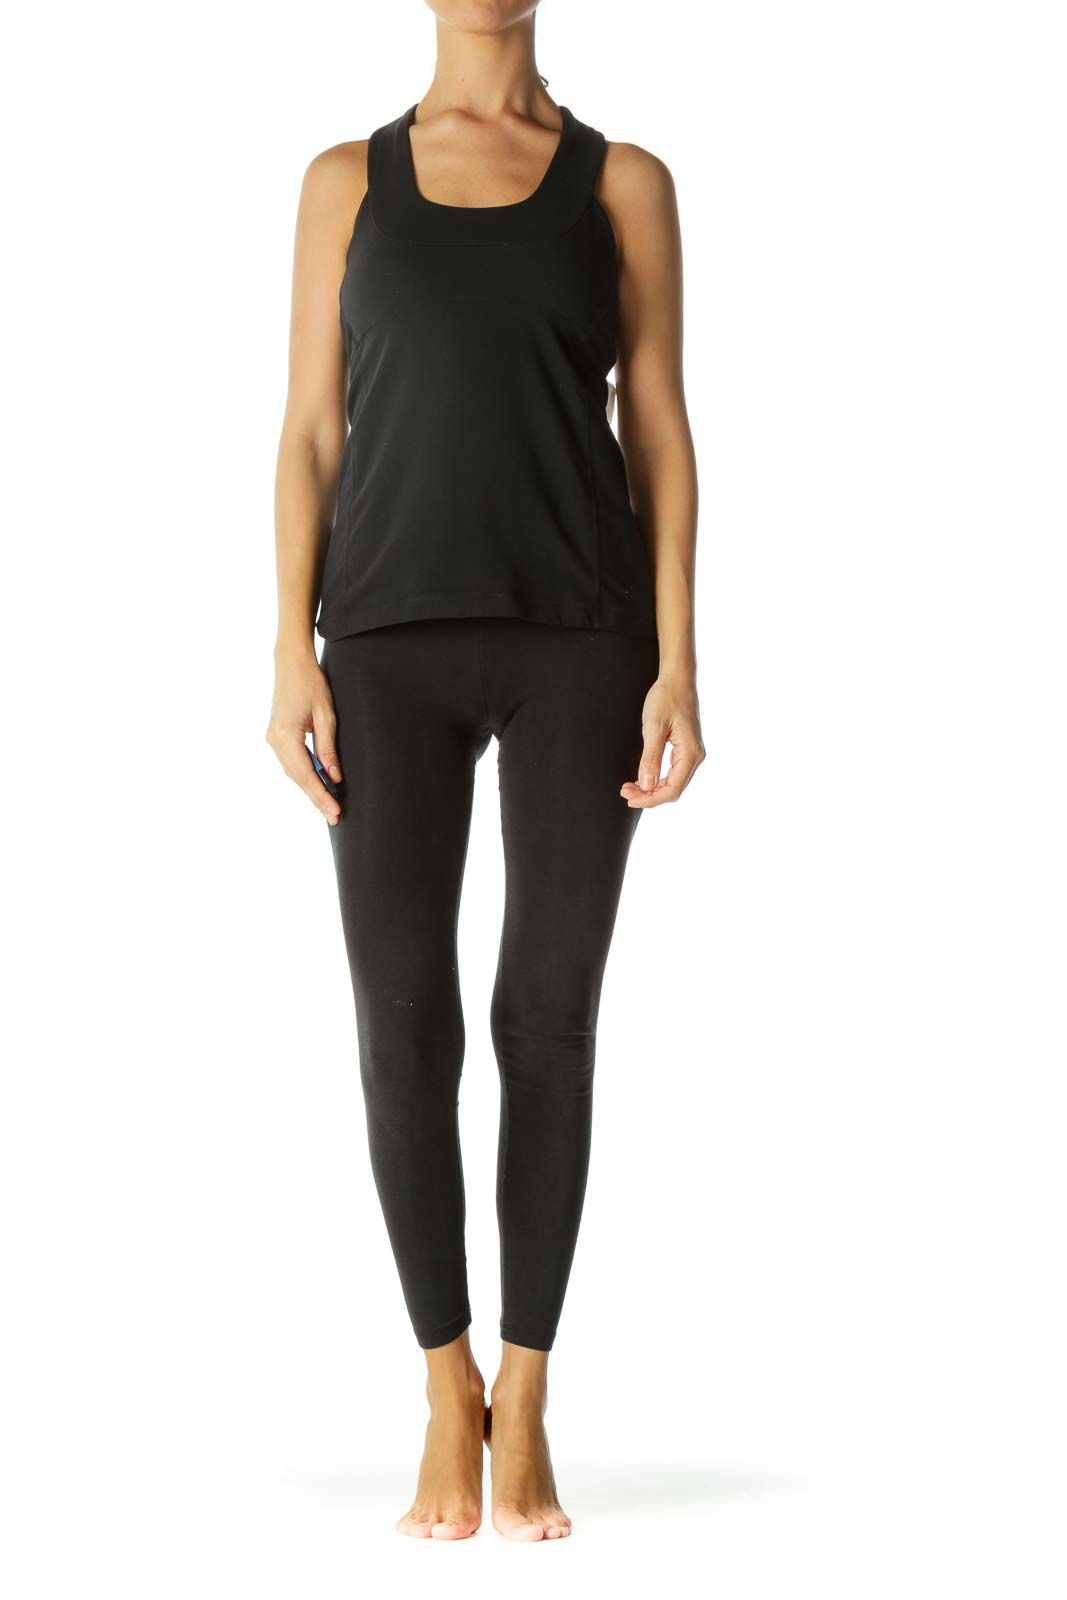 Black Round Neck Stretch Active Top with Built-In Support